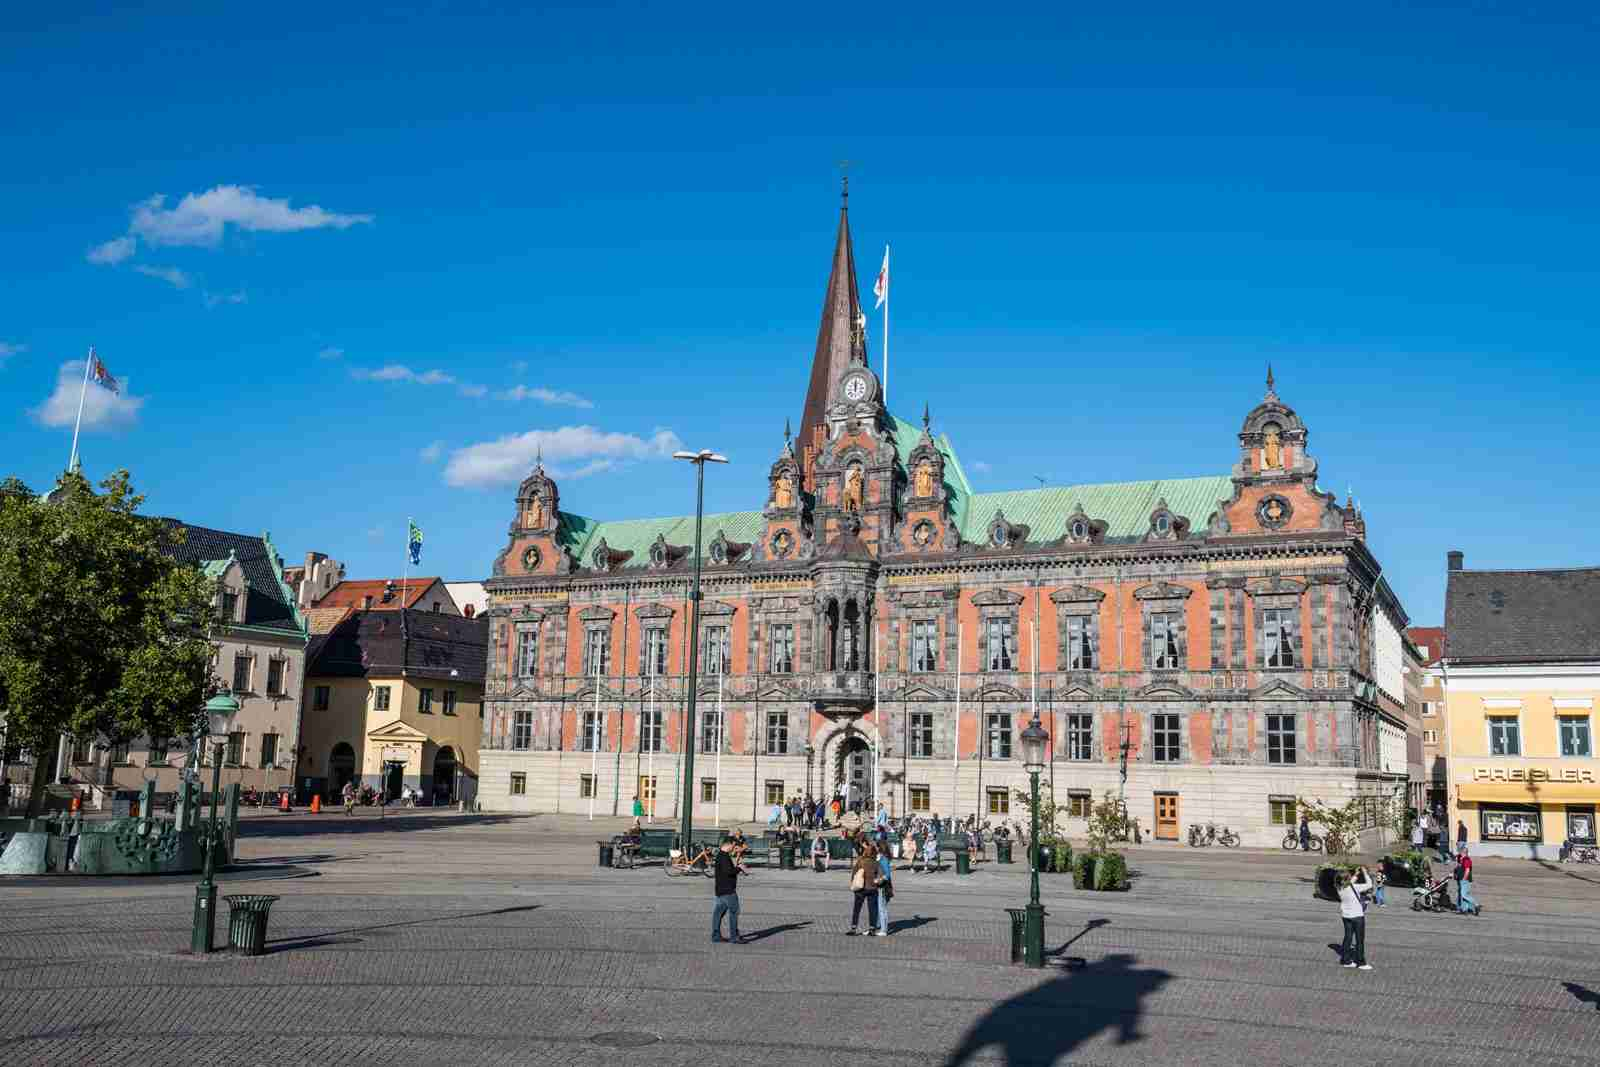 The old City Hall in Malmö. (Photo by Michael Runkel/Getty Images)